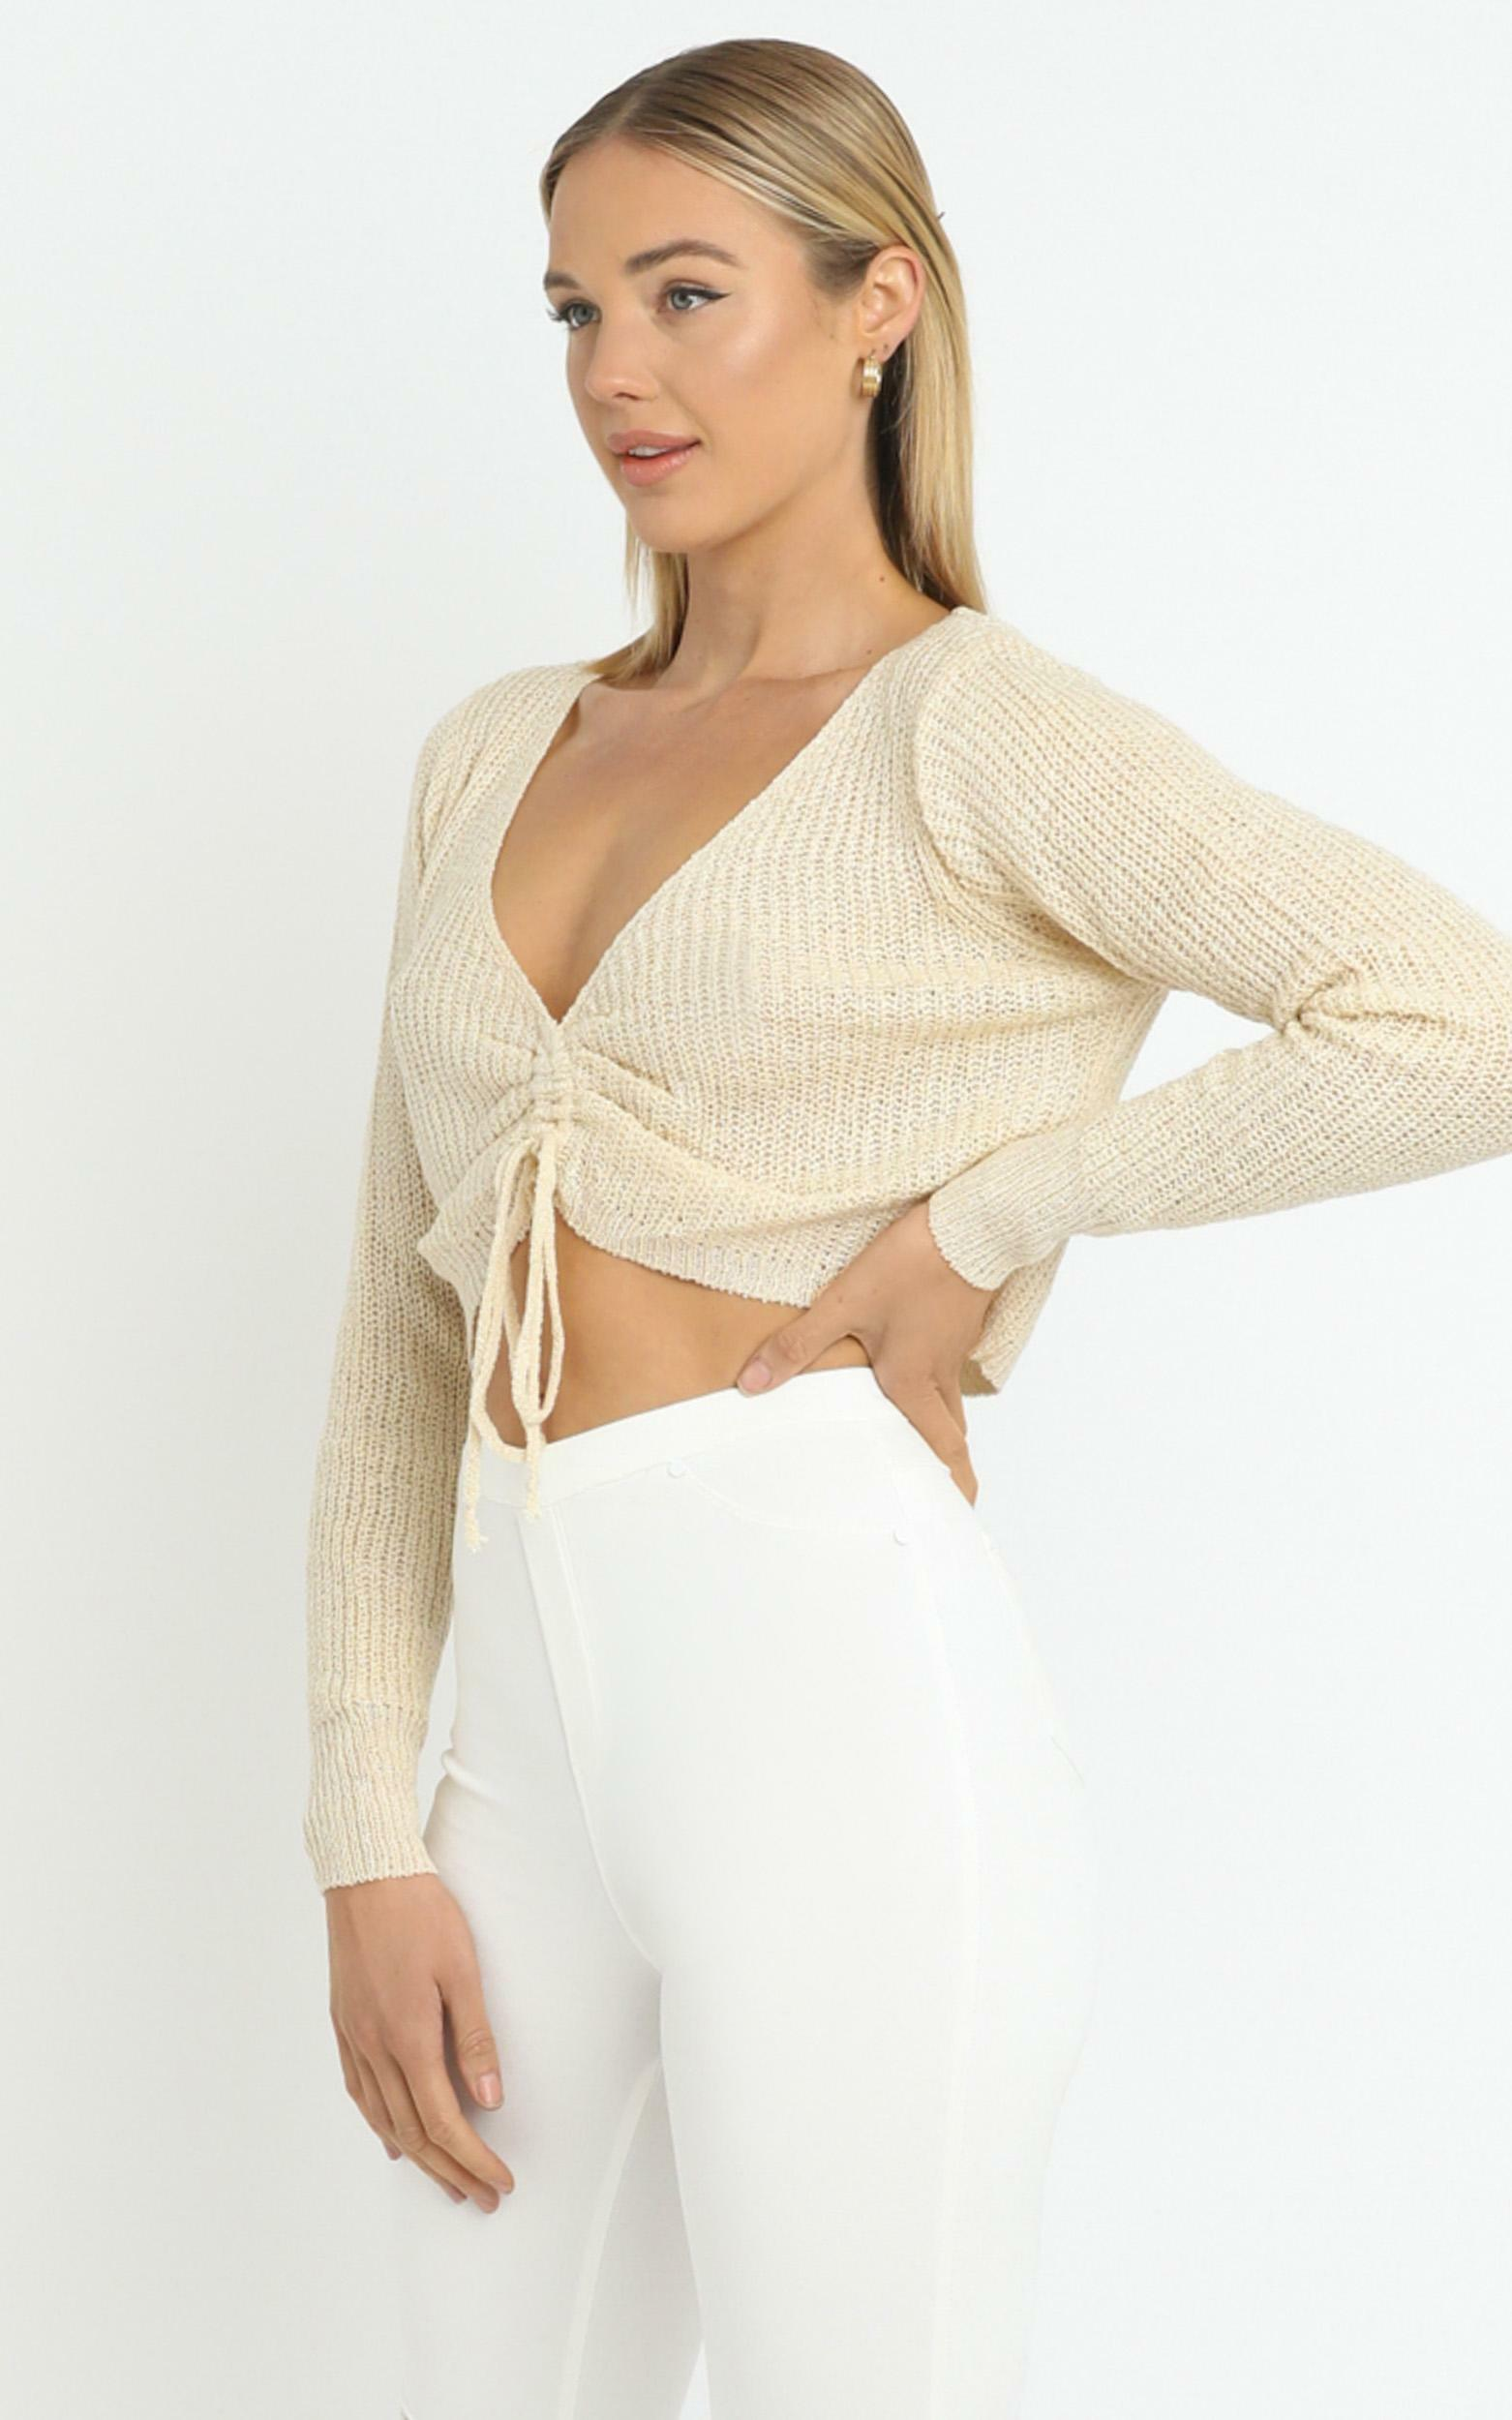 Anamarie Knit Top in Beige - M/L, Beige, hi-res image number null